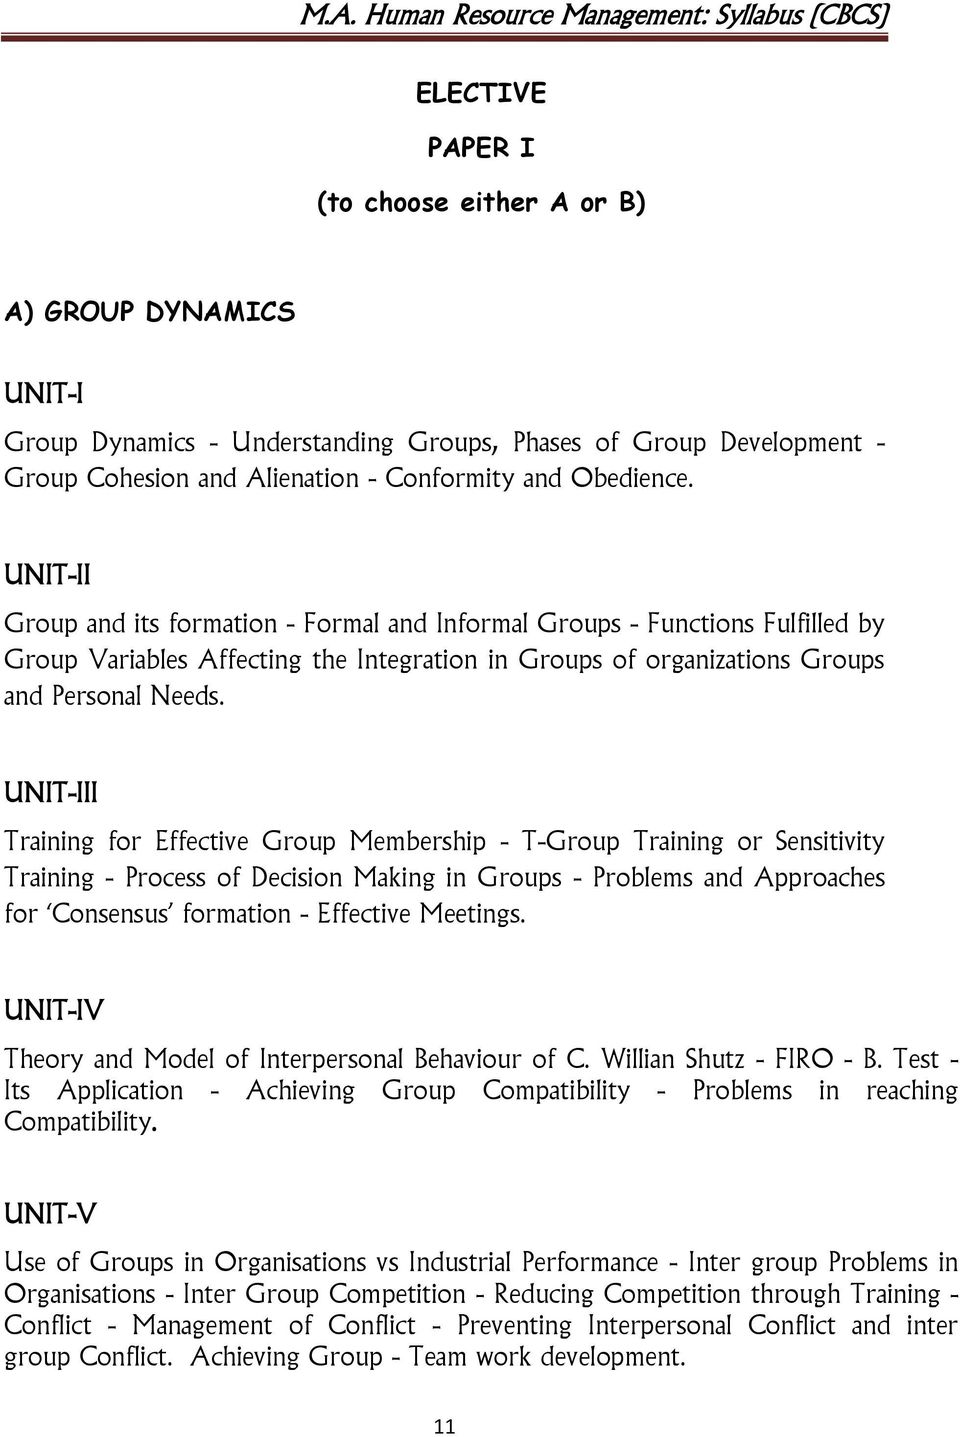 UNIT-III Training for Effective Group Membership - T-Group Training or Sensitivity Training - Process of Decision Making in Groups - Problems and Approaches for Consensus formation - Effective